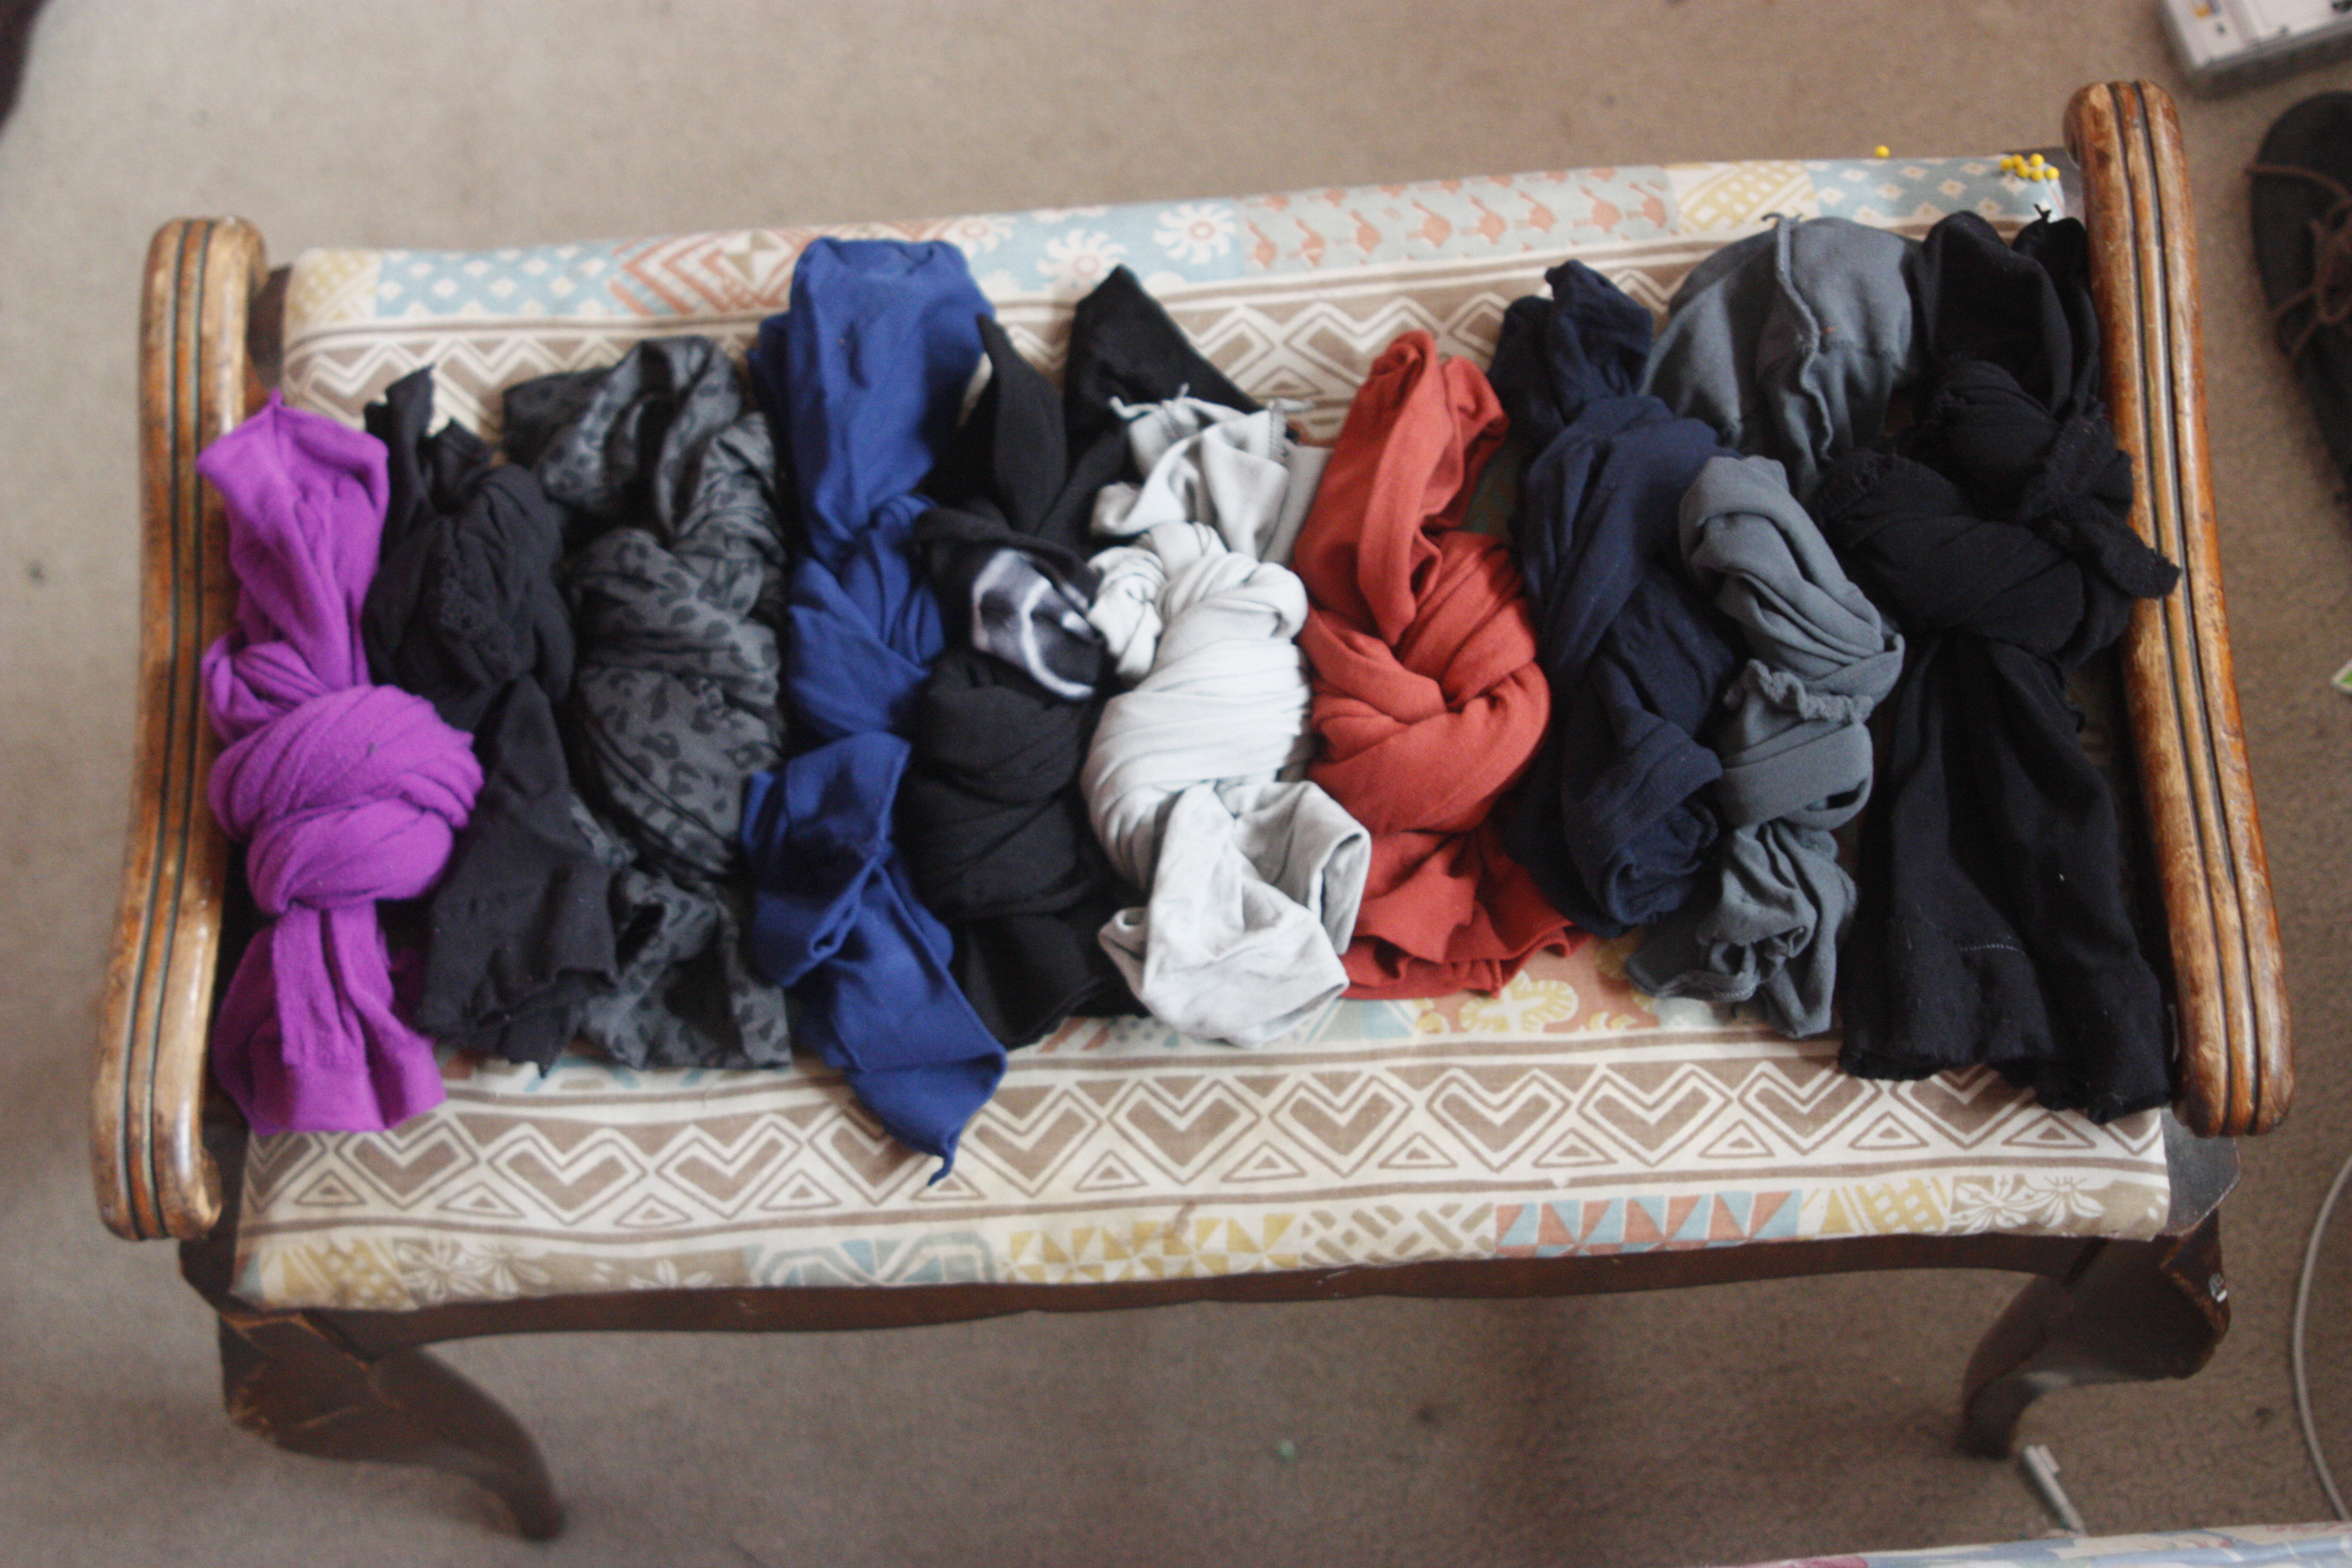 Picture of How to Store Tights and Stockings by Tying Them Into Simple Knots